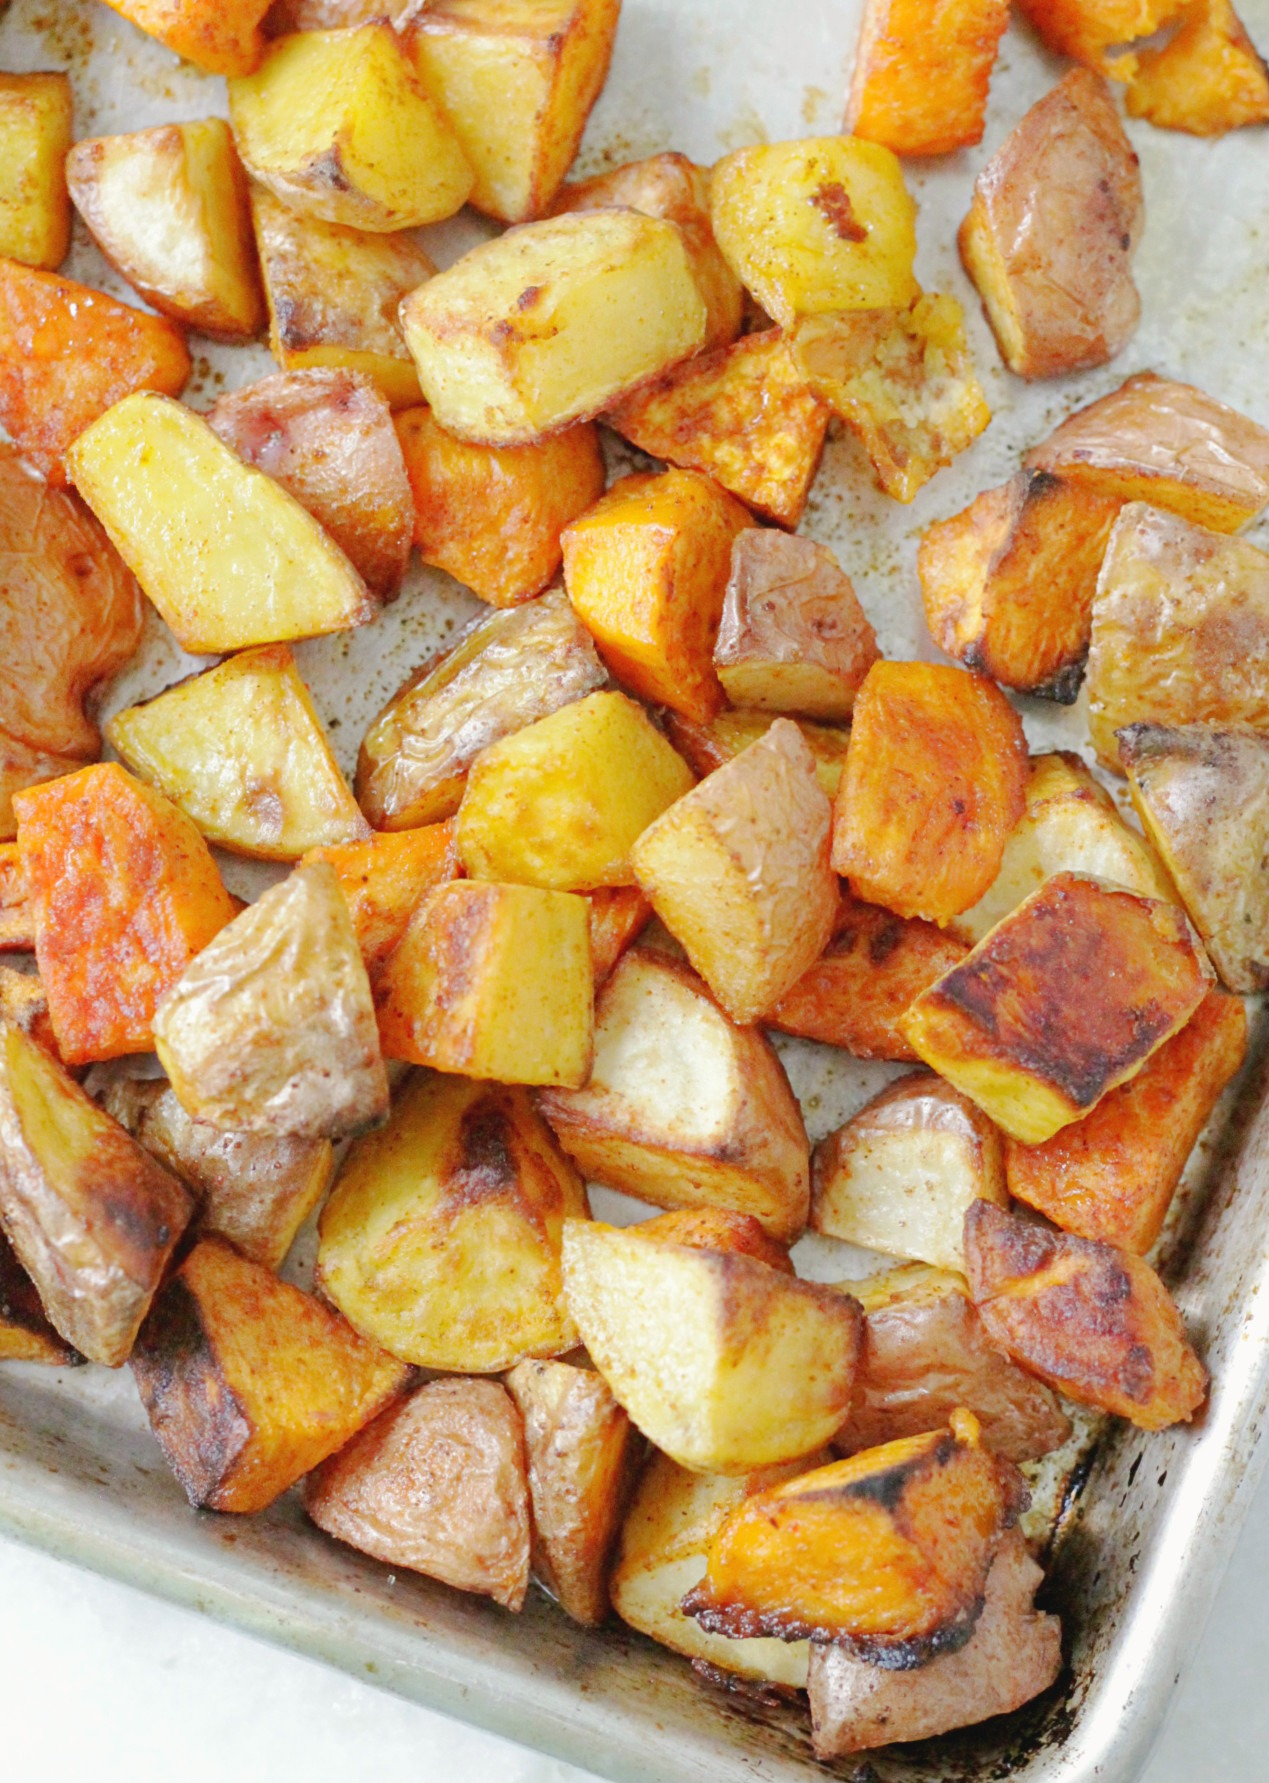 perfect oven roasted potatoes overhead view on a sheet pan